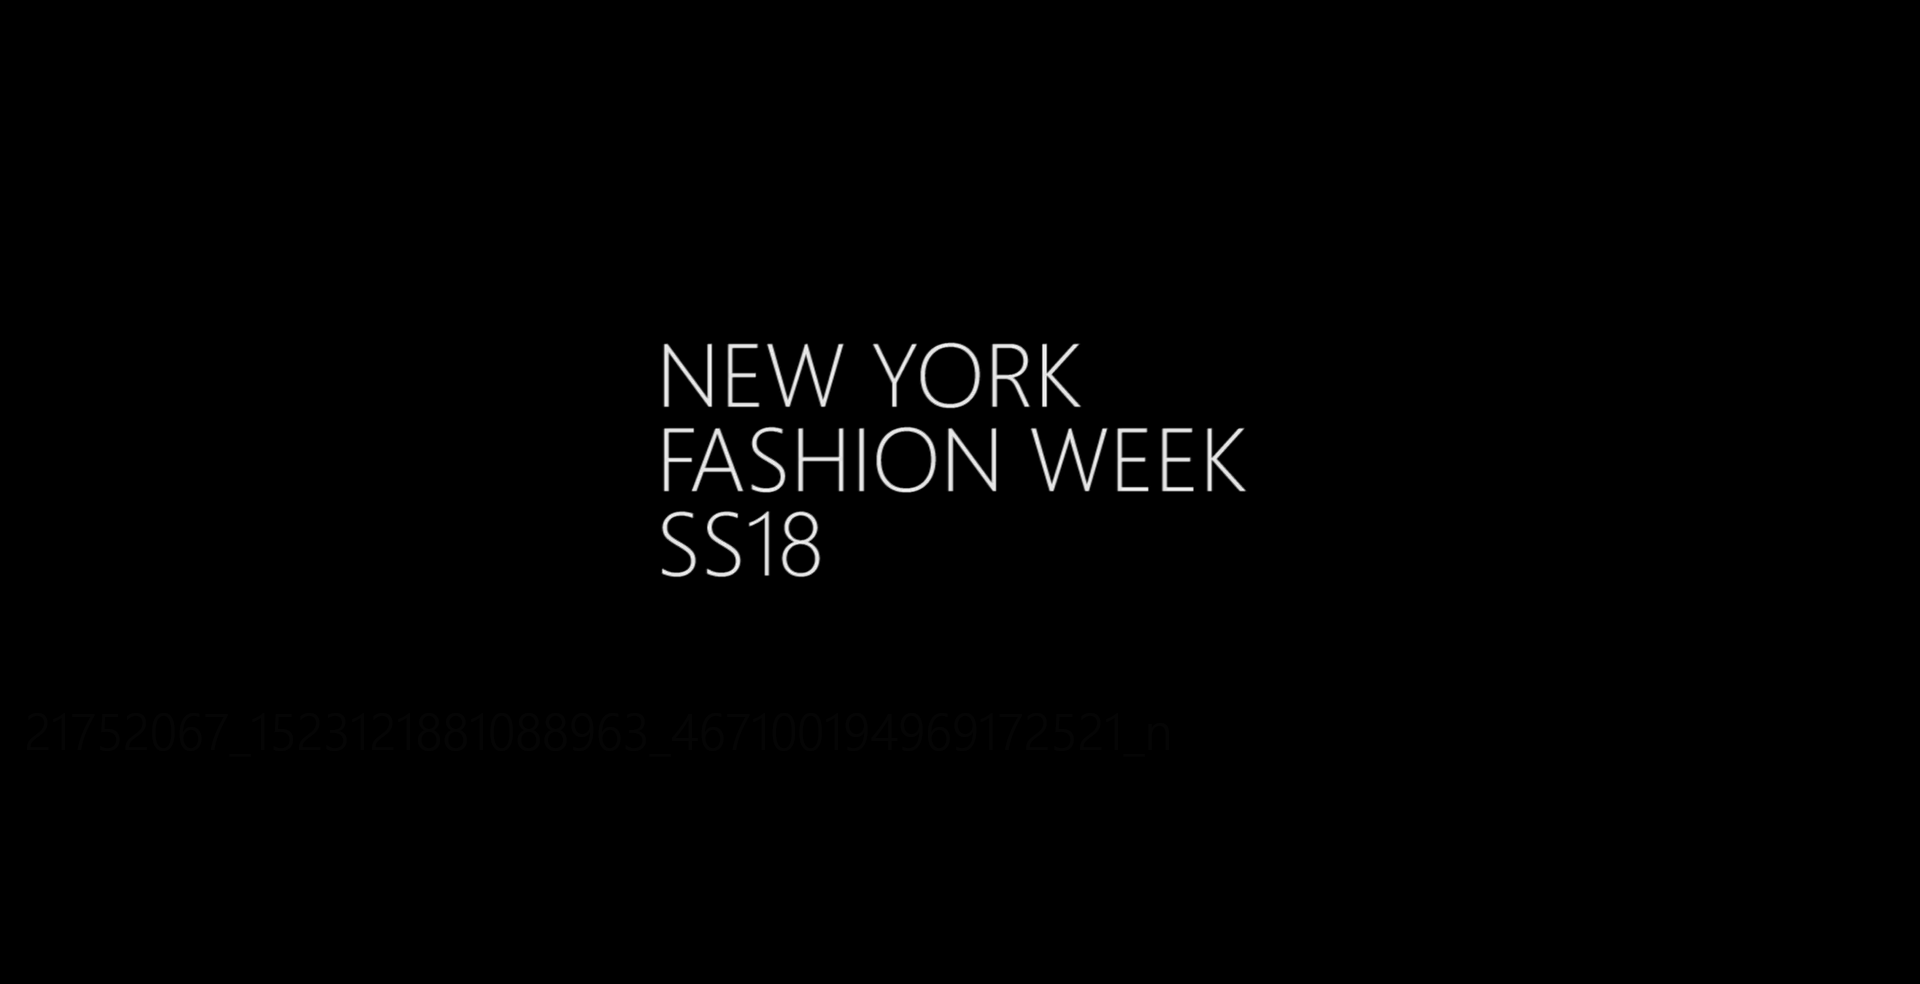 NEW YORK FASHION WEEK SS18